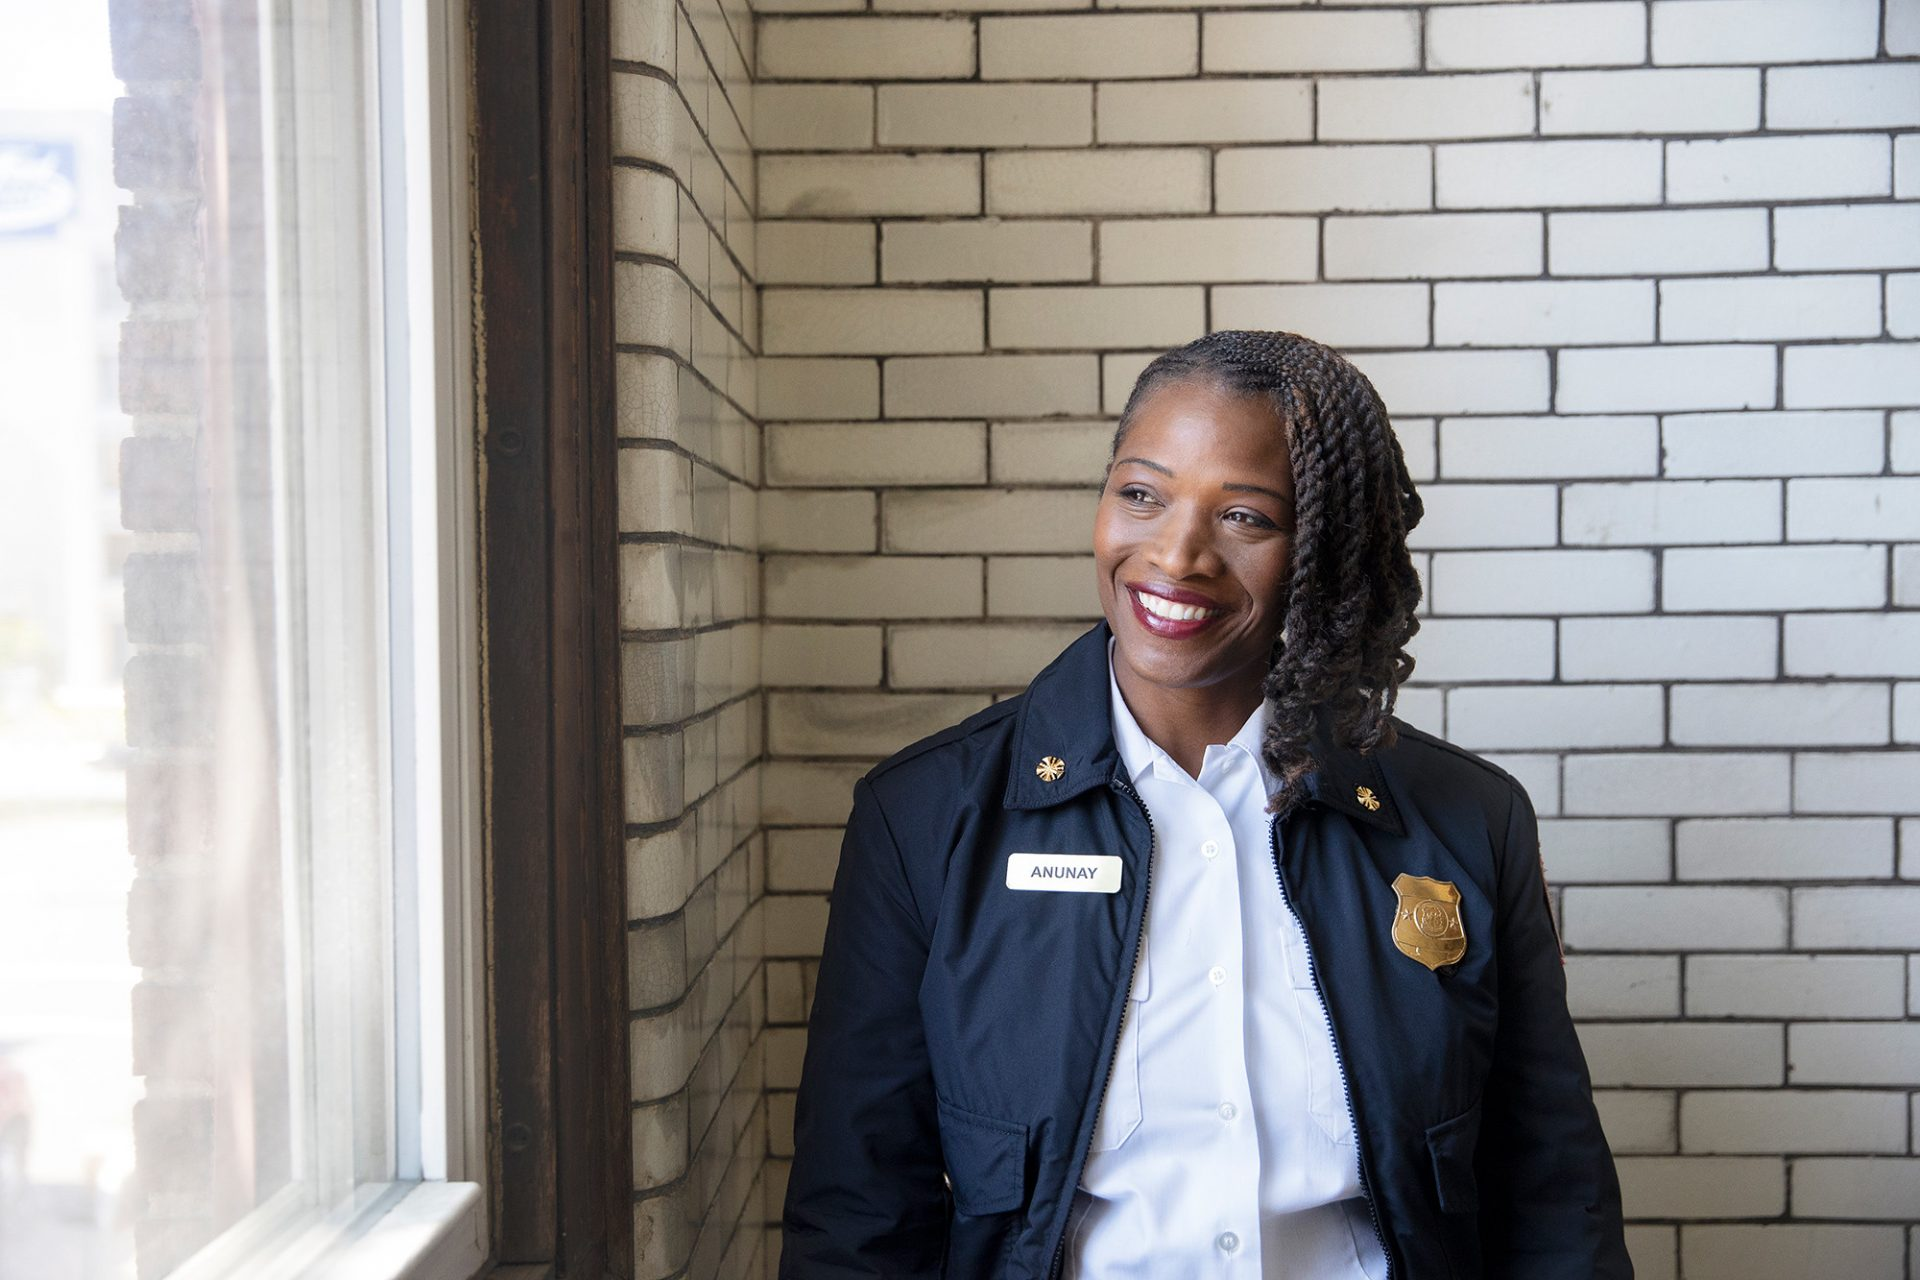 Her Job As Deputy Fire Chief